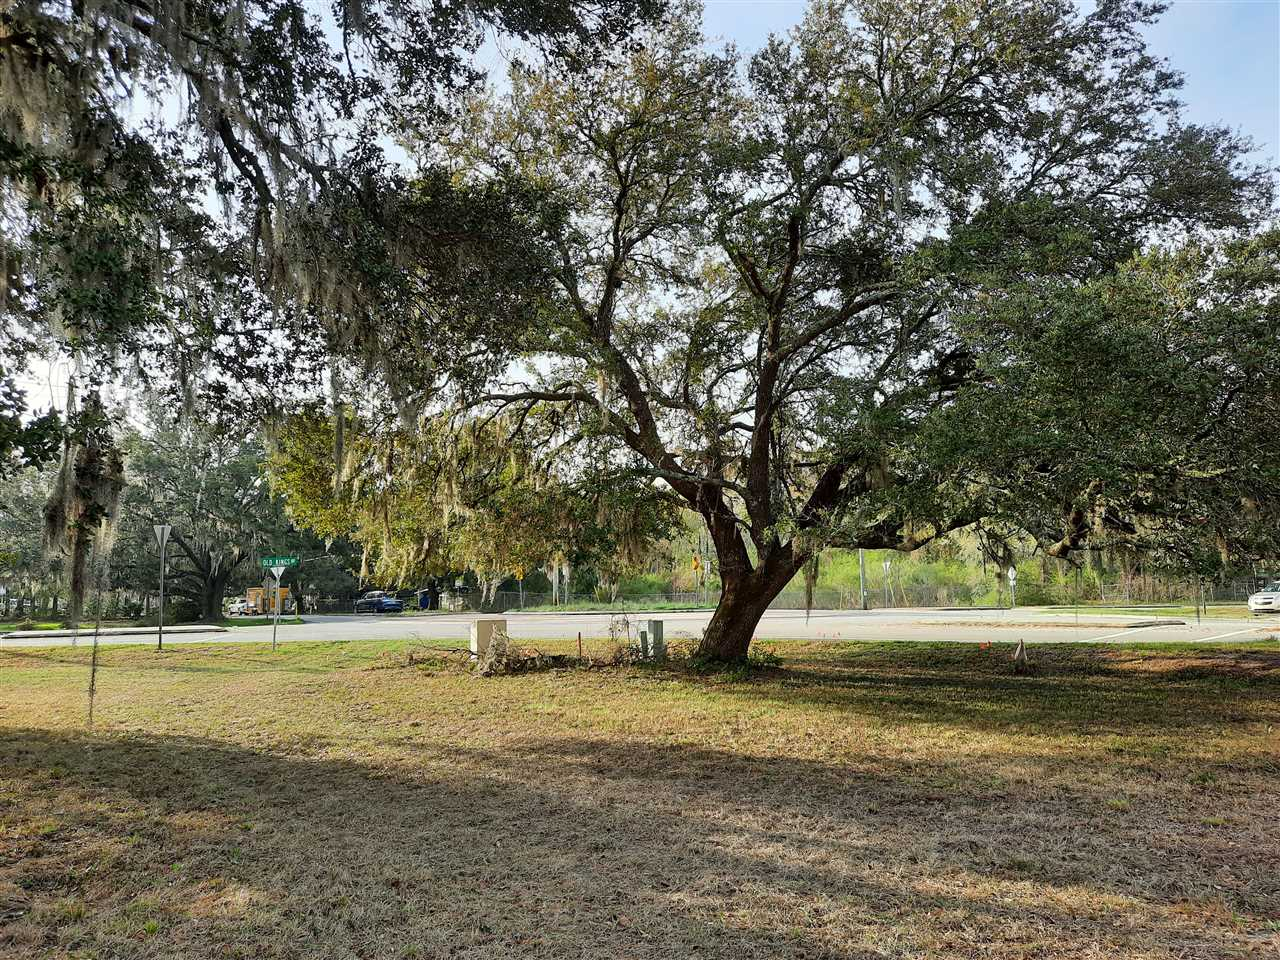 If you have been on the search for a NON-HOA lot in Murrells Inlet, look no more. This near half-acre lot has a sprawling space with 200-300 year old live oaks . Located centrally between Murrells Inlet creek (saltwater) and the Intracoastal Waterway and Wacca Wache Marina (freshwater). The lot will come with water-sewer taps installed and cleared. Zoning in this district permits for a single family principal structure, AND, a detached mother-in-law suite/guest house up to 900 heated sq. feet. Another great feature is the Murrells Inlet bike path will have its next phase connecting from across 17 at the Marshwalk to Wacca Wache Marina coming directly in front of the lot! You will have the ability to ride from here to Pawleys via the I2I bike path. This is one of the last vacant lots available in the Murrells Inlet area with no hoa.